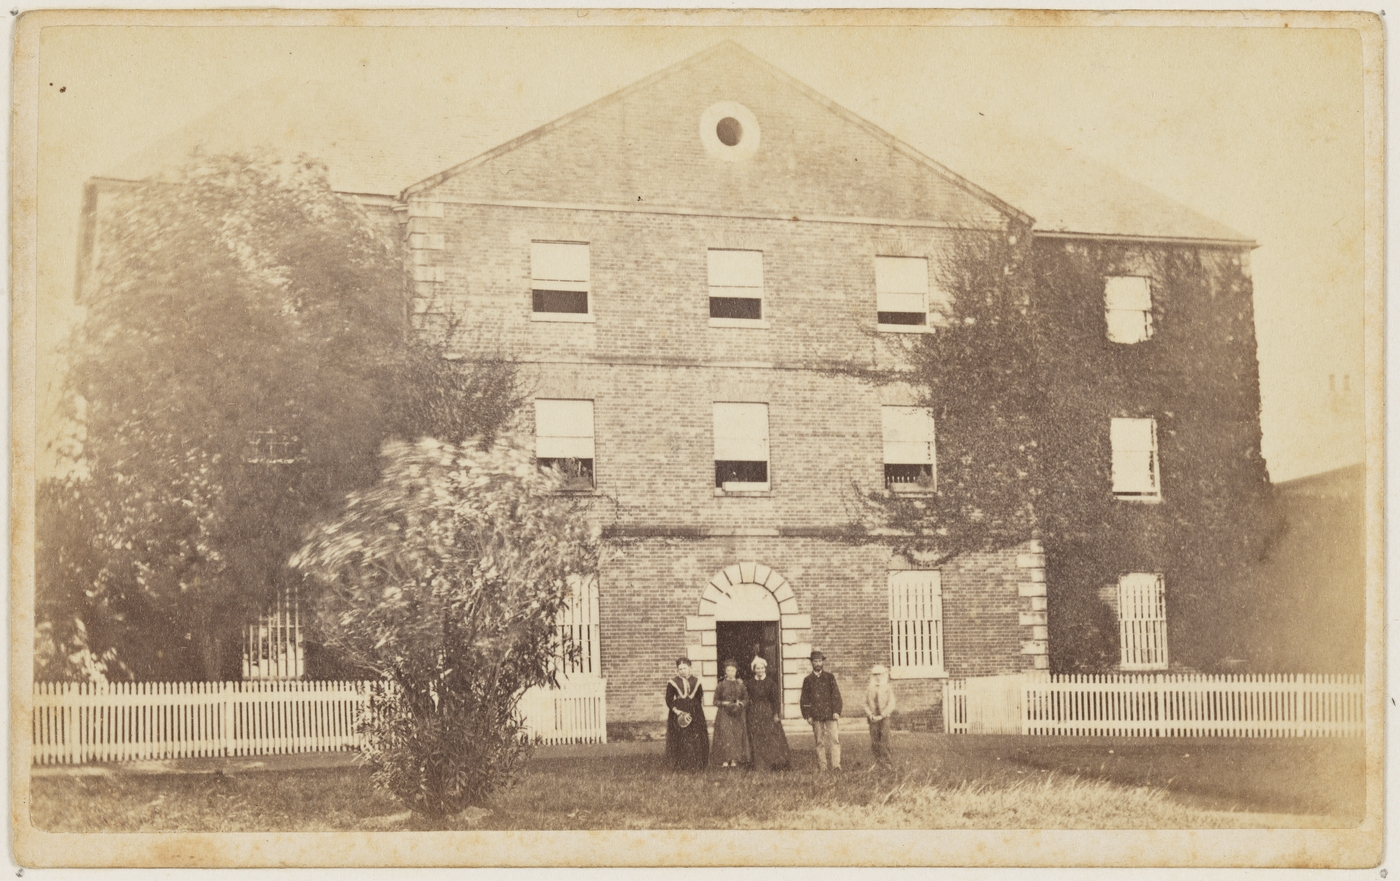 The Protestant Orphan School between 1870 and 1875, with Martha Betts in the foreground (State Library of New South Wales SPF / 2661)